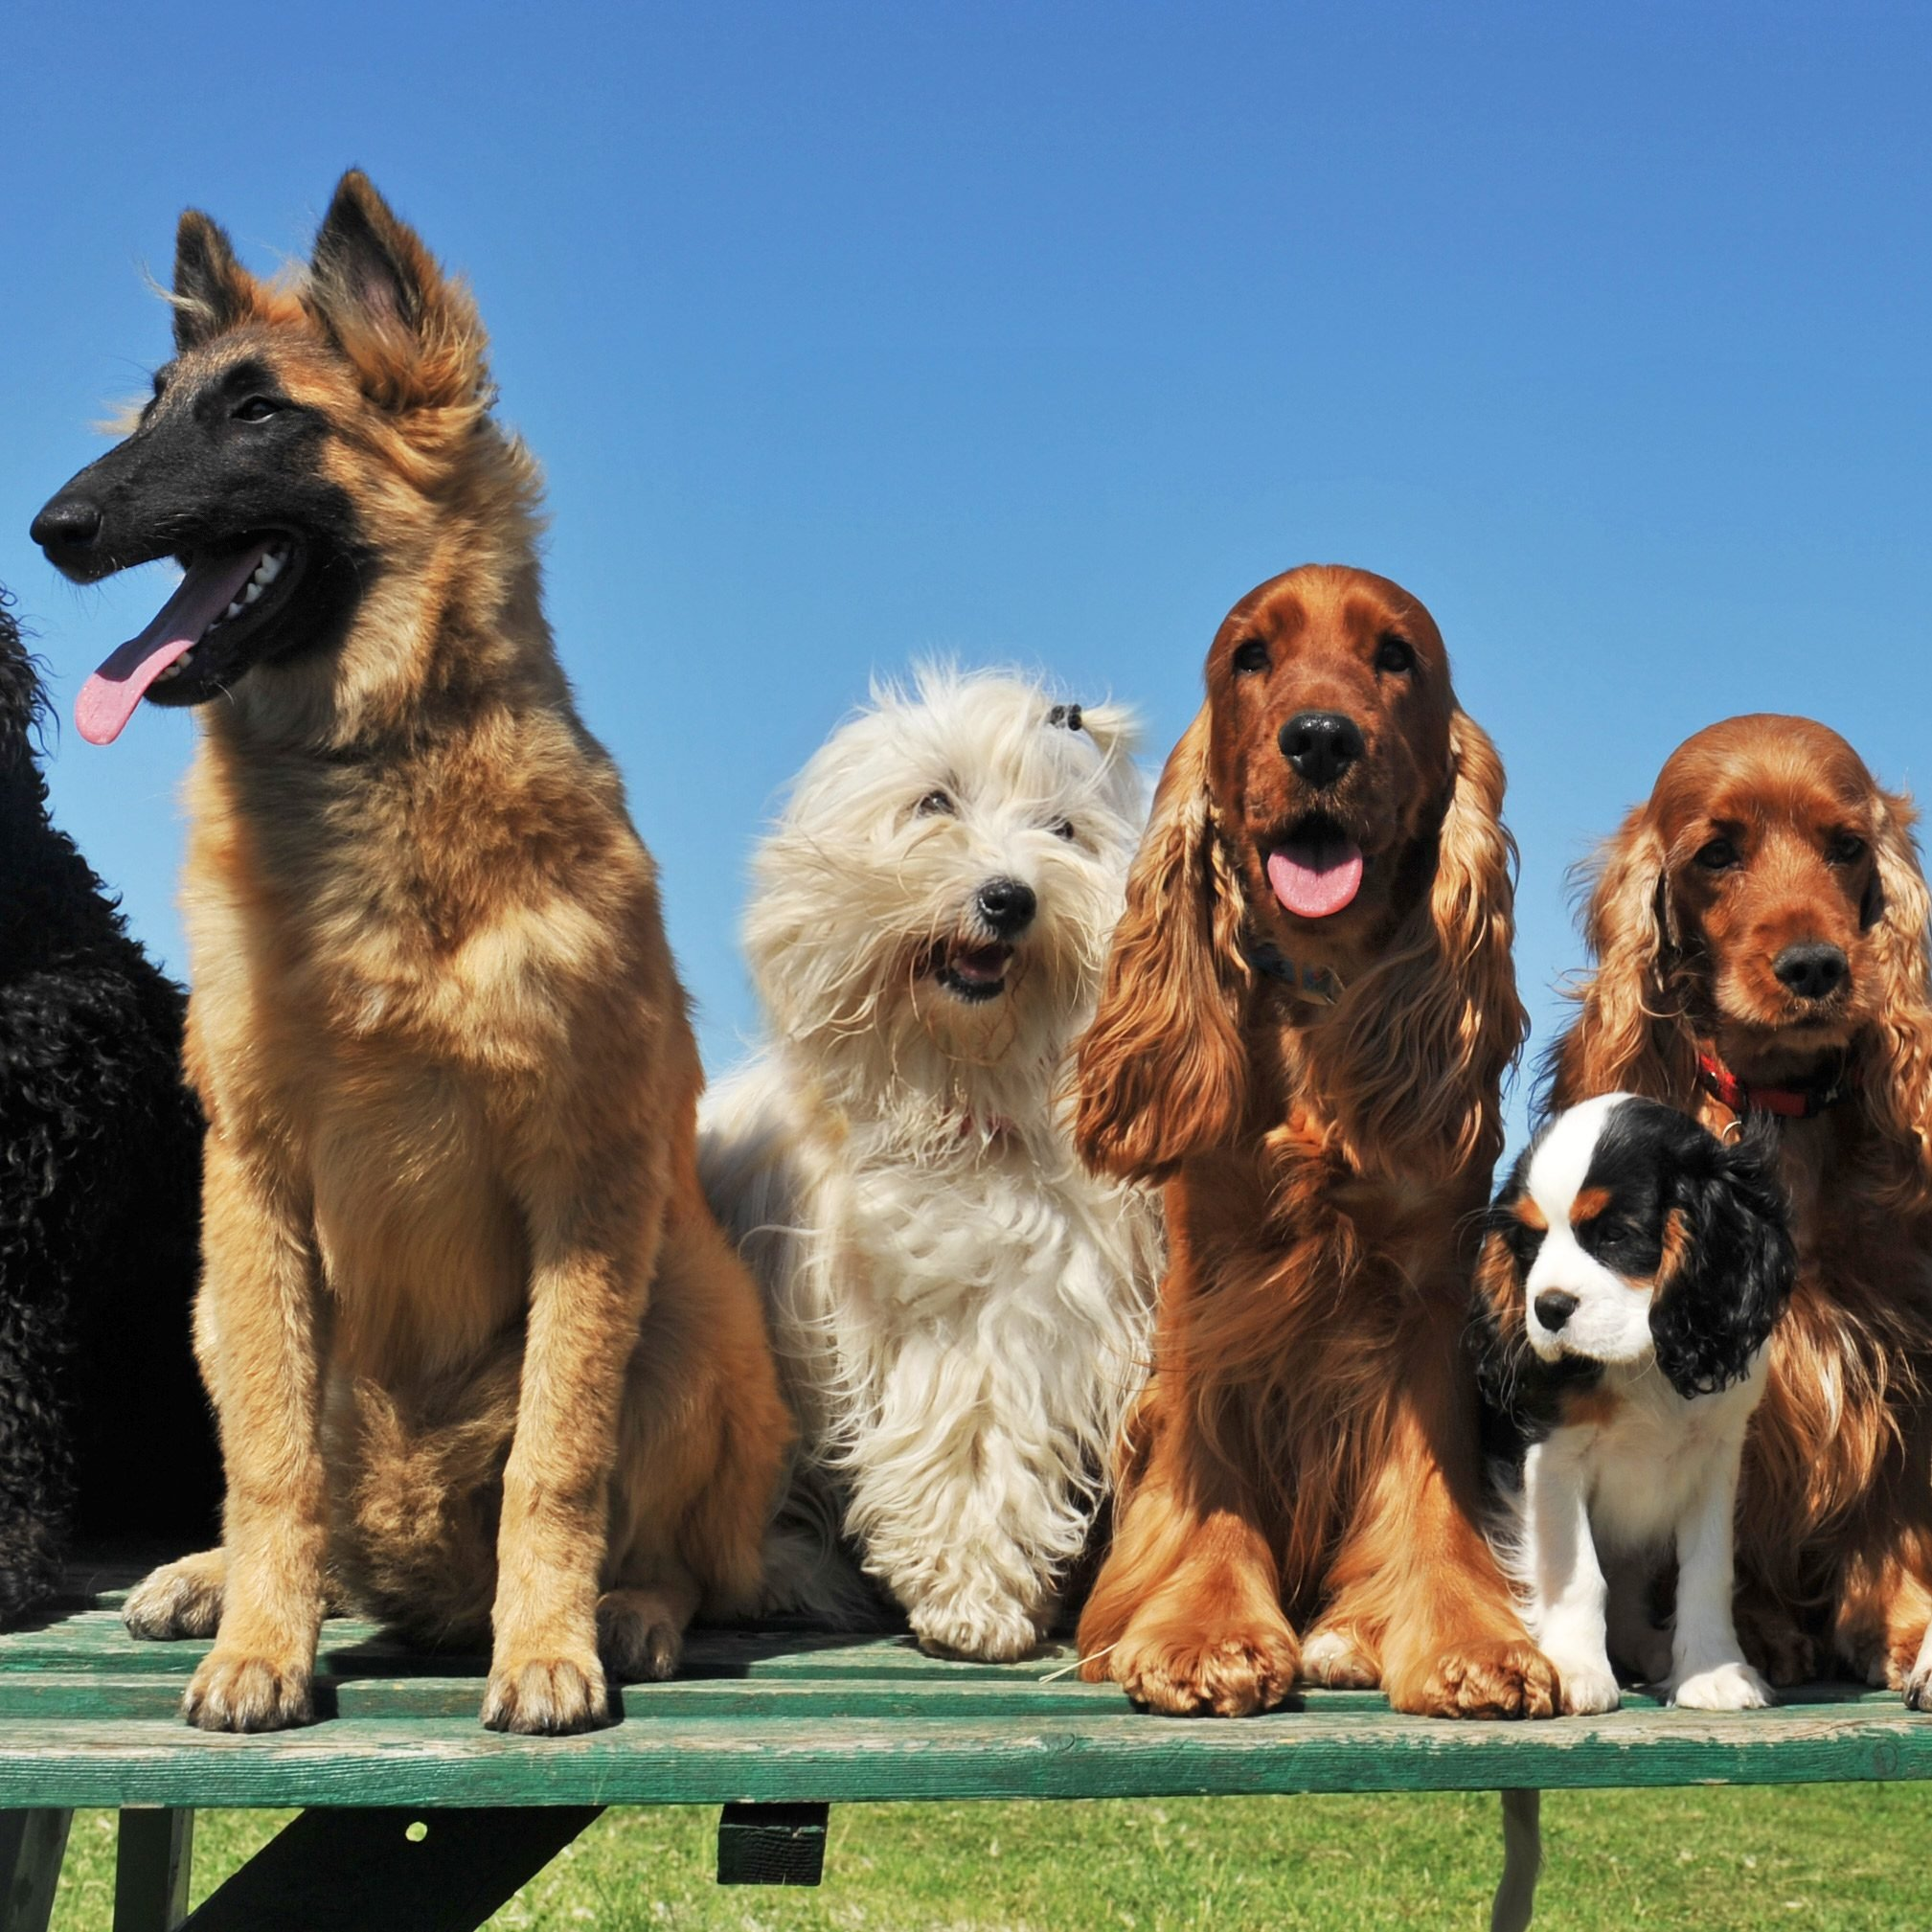 How Many Breeds of Dogs Are There in the World?